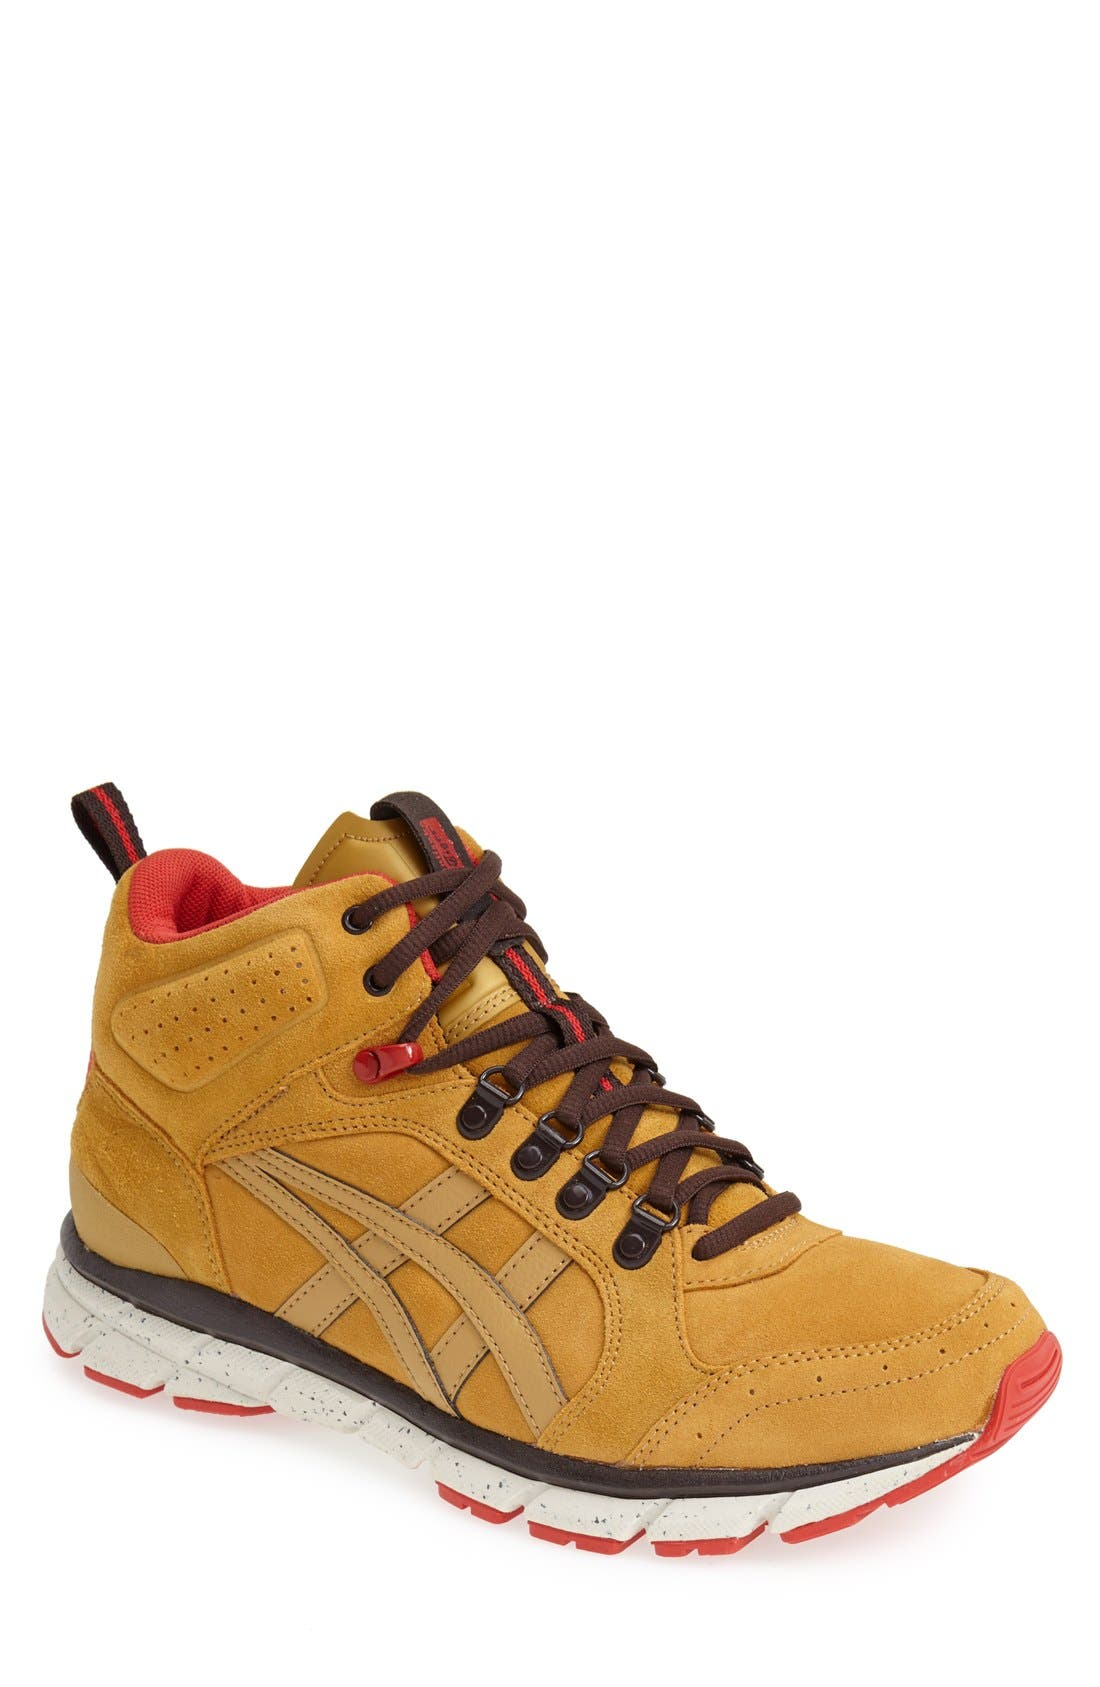 Onitsuka Tiger 'Harandia MT' Sneaker, Main, color, 750